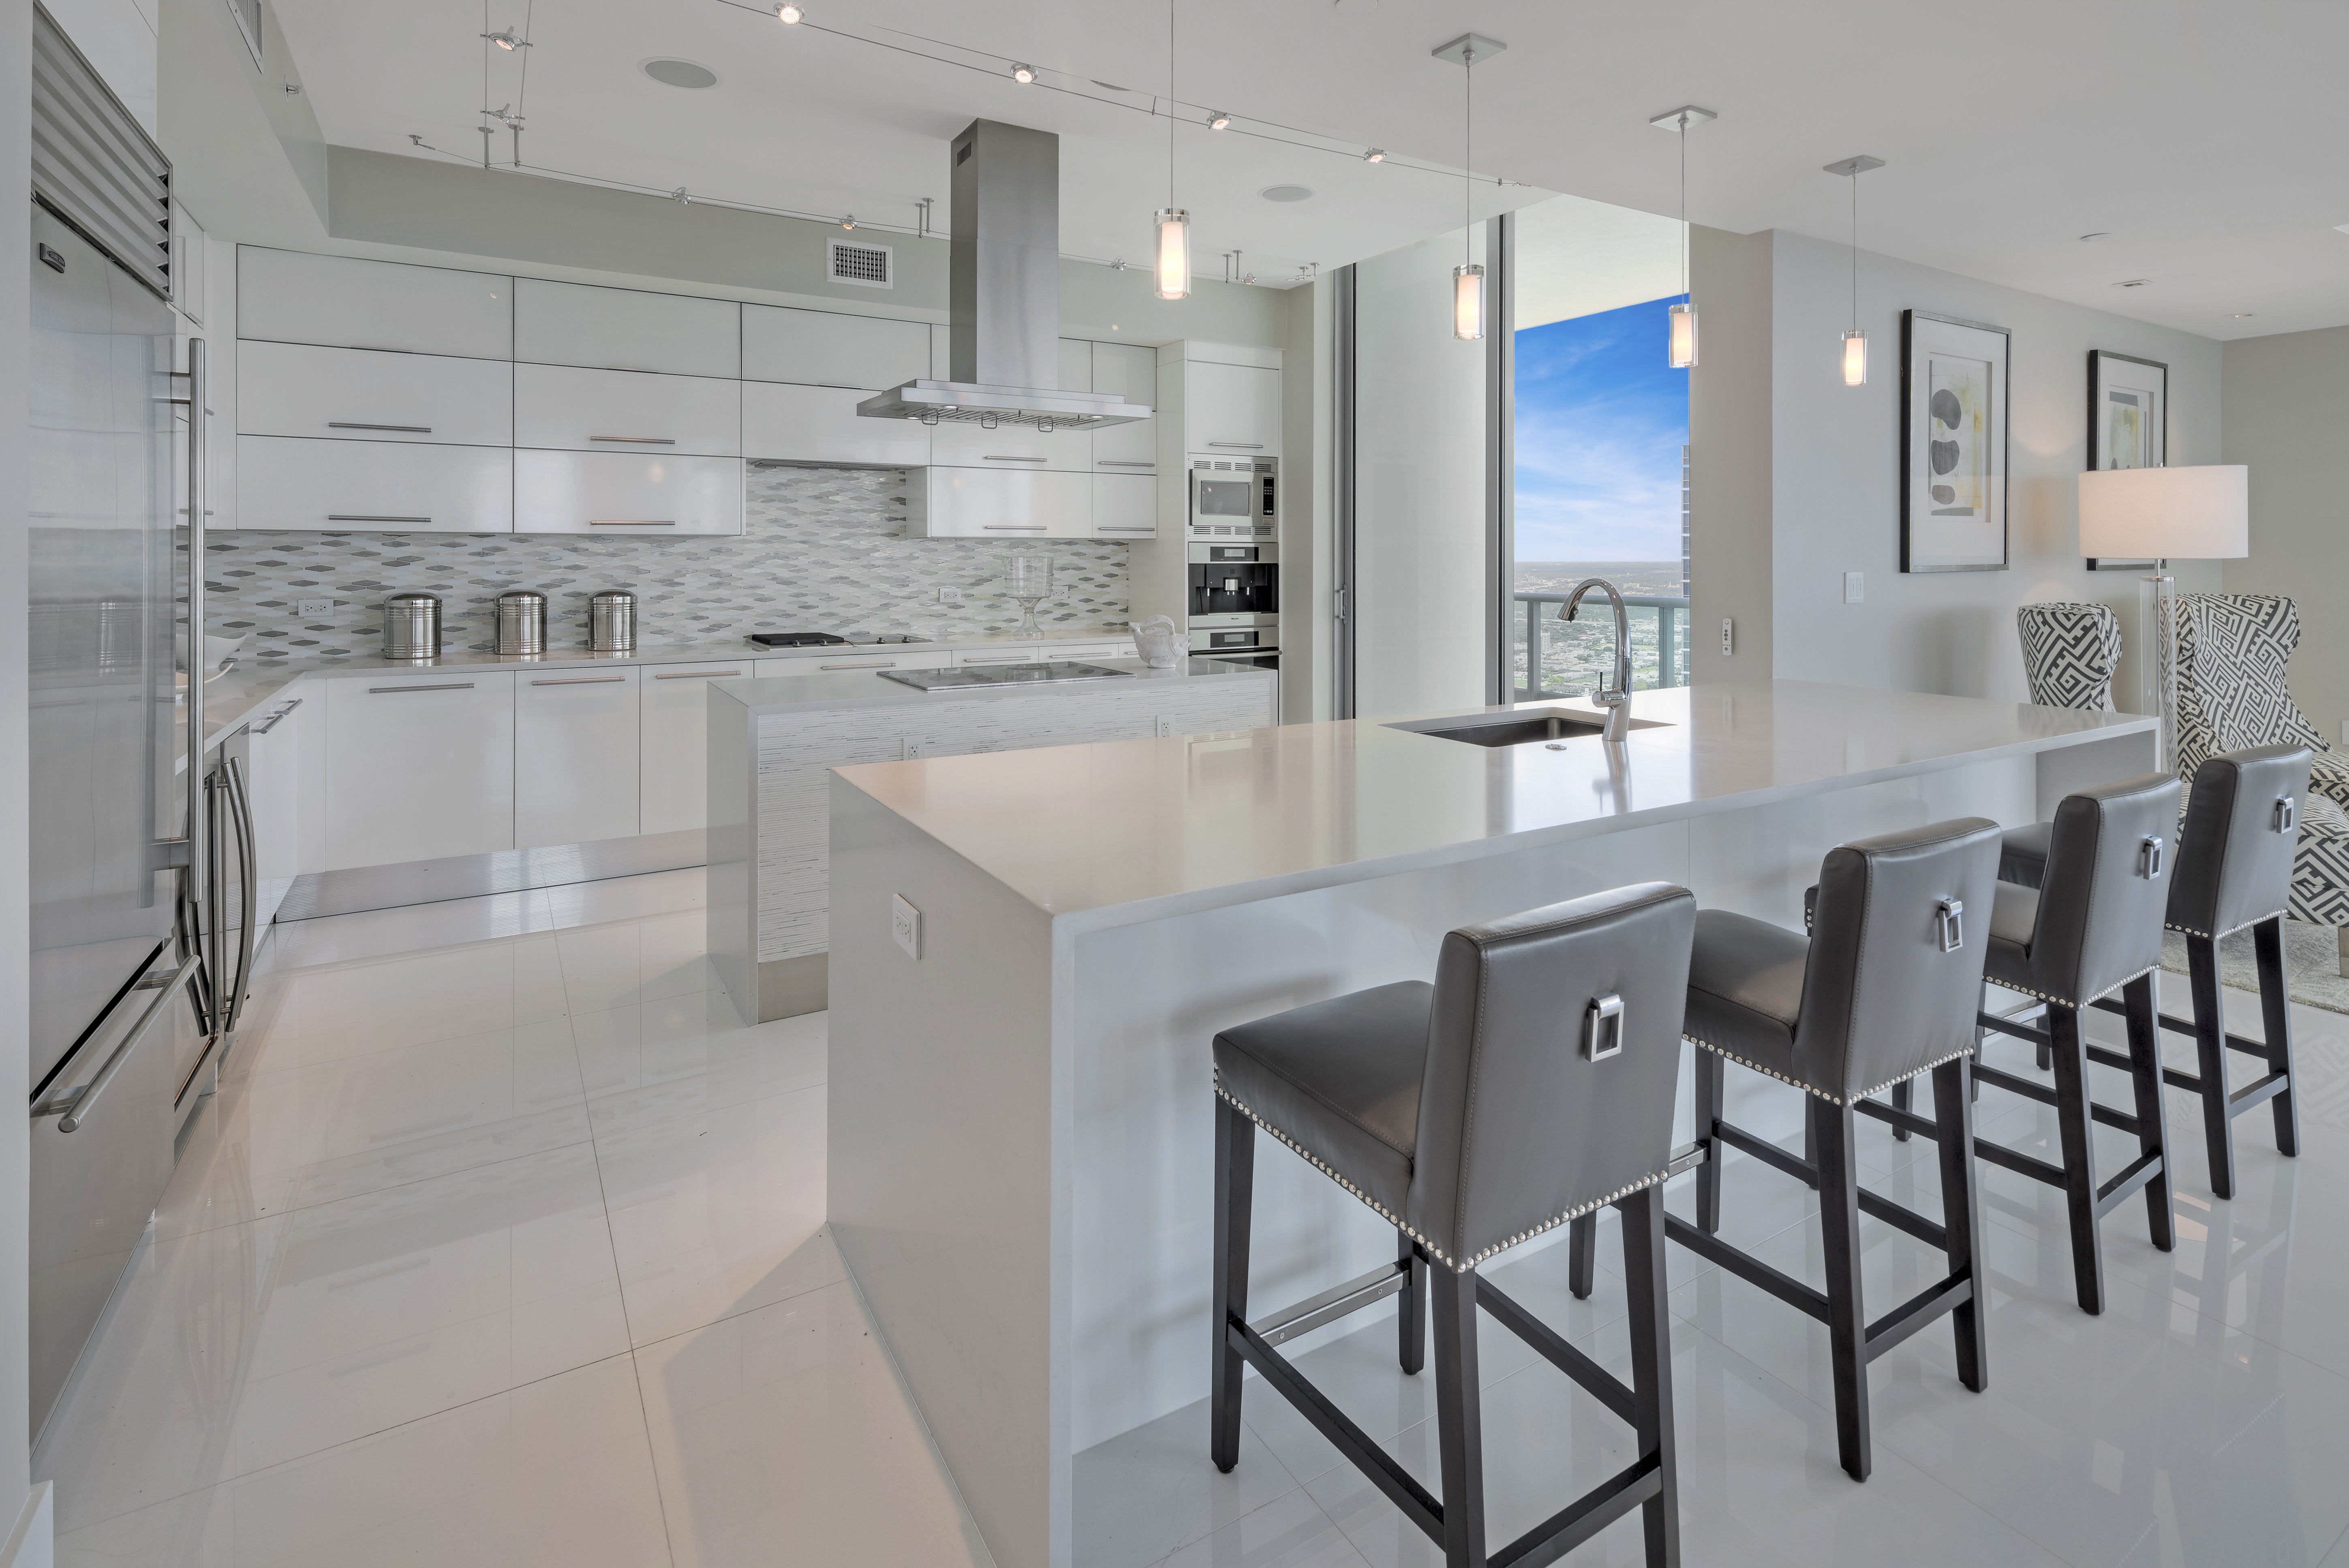 900 Biscayne Bay Penthouse 6307 Kitchen